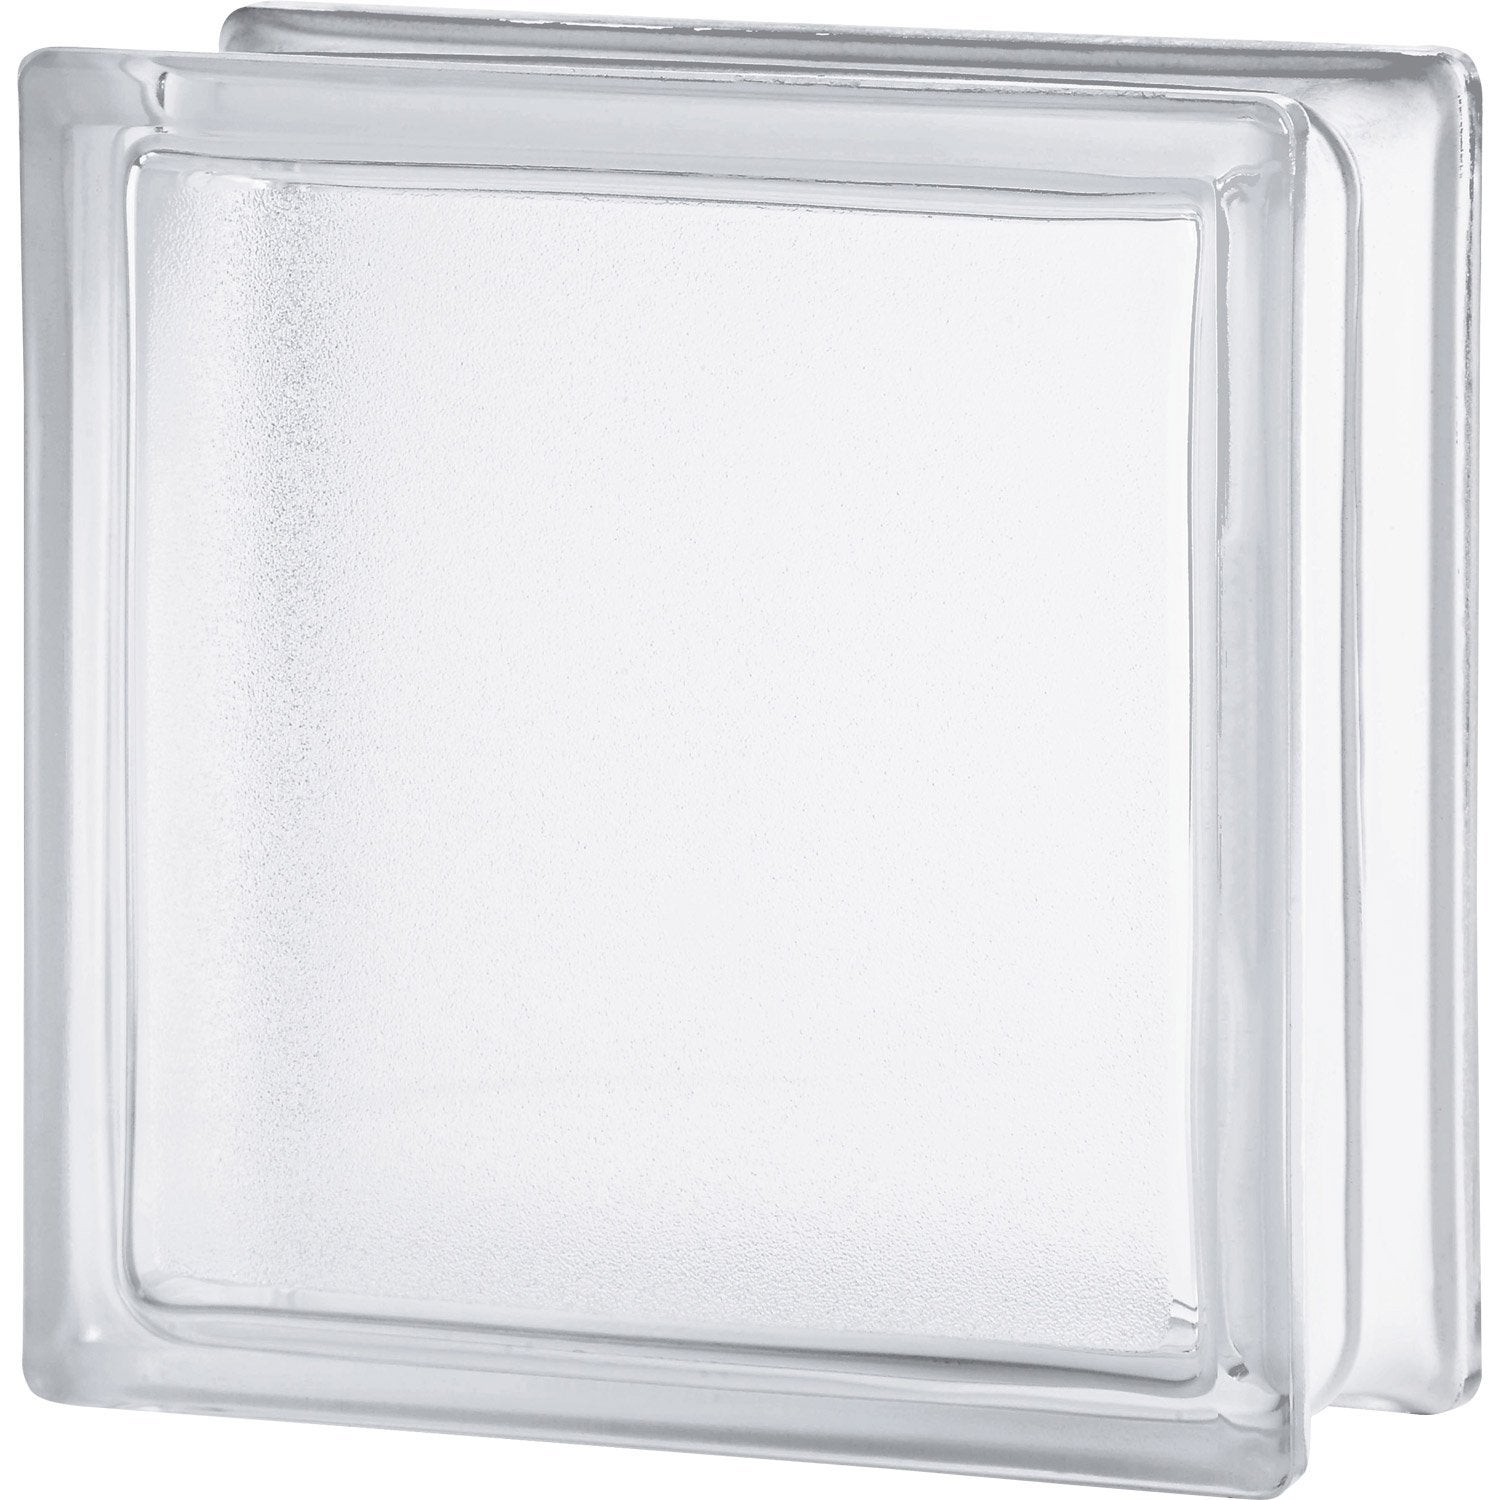 Brique de verre transparent lisse double face leroy merlin - Brique de verre leroy merlin ...